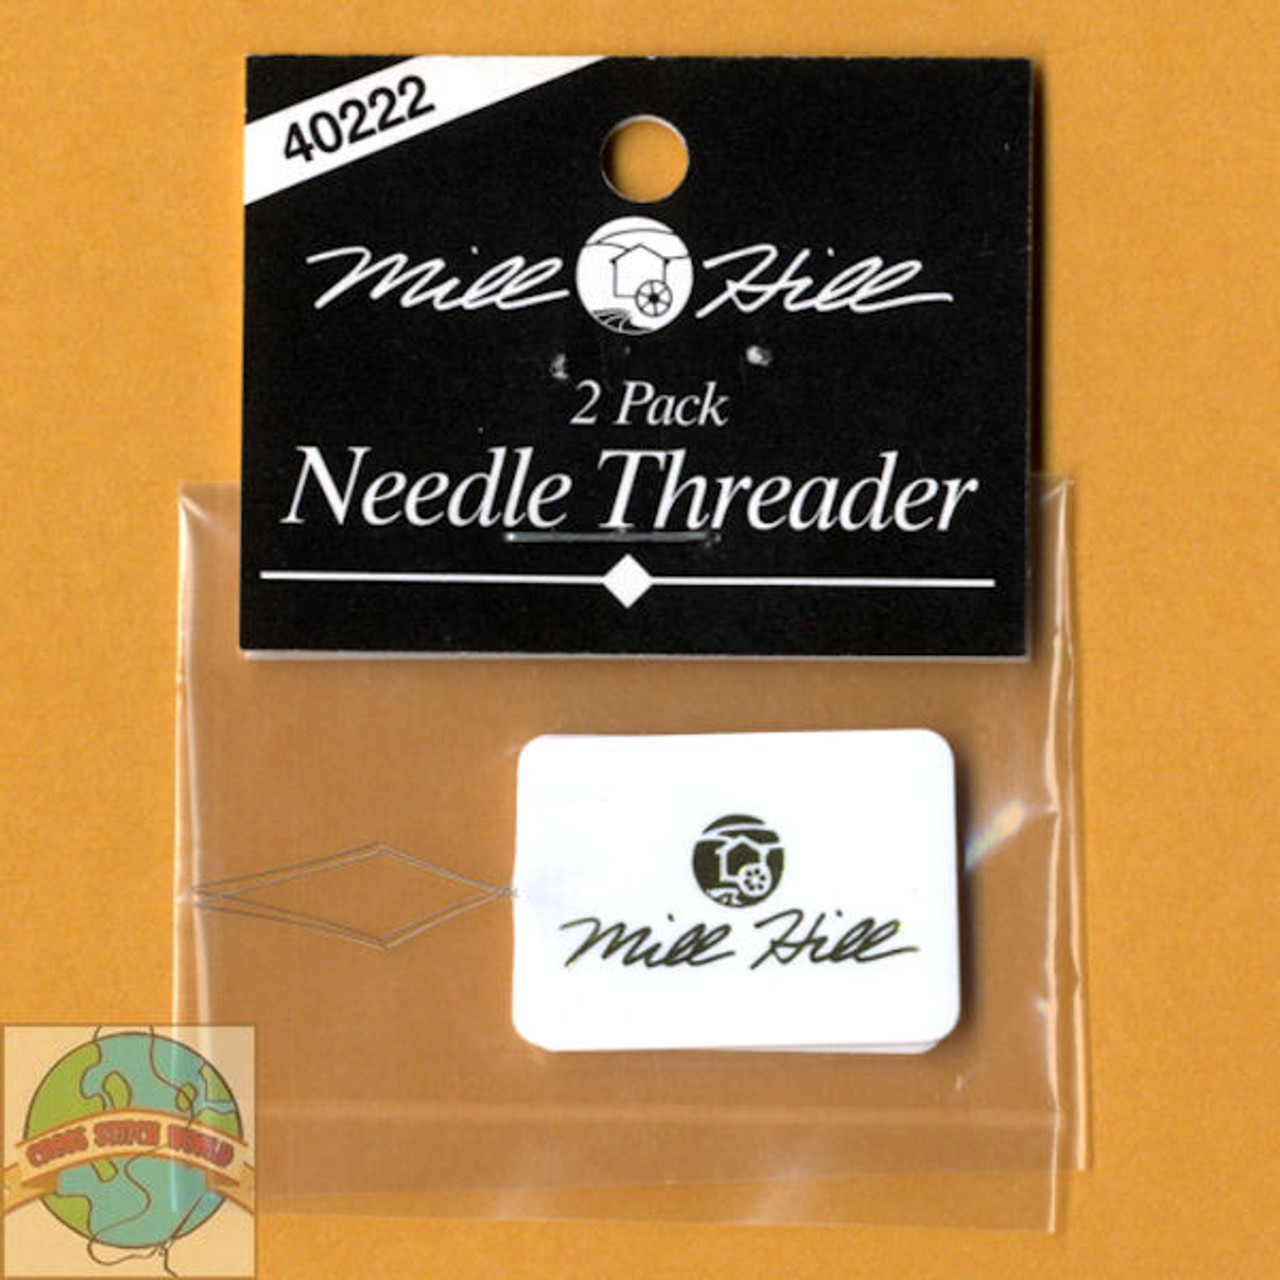 Crafts New Needle Threader 2-pack